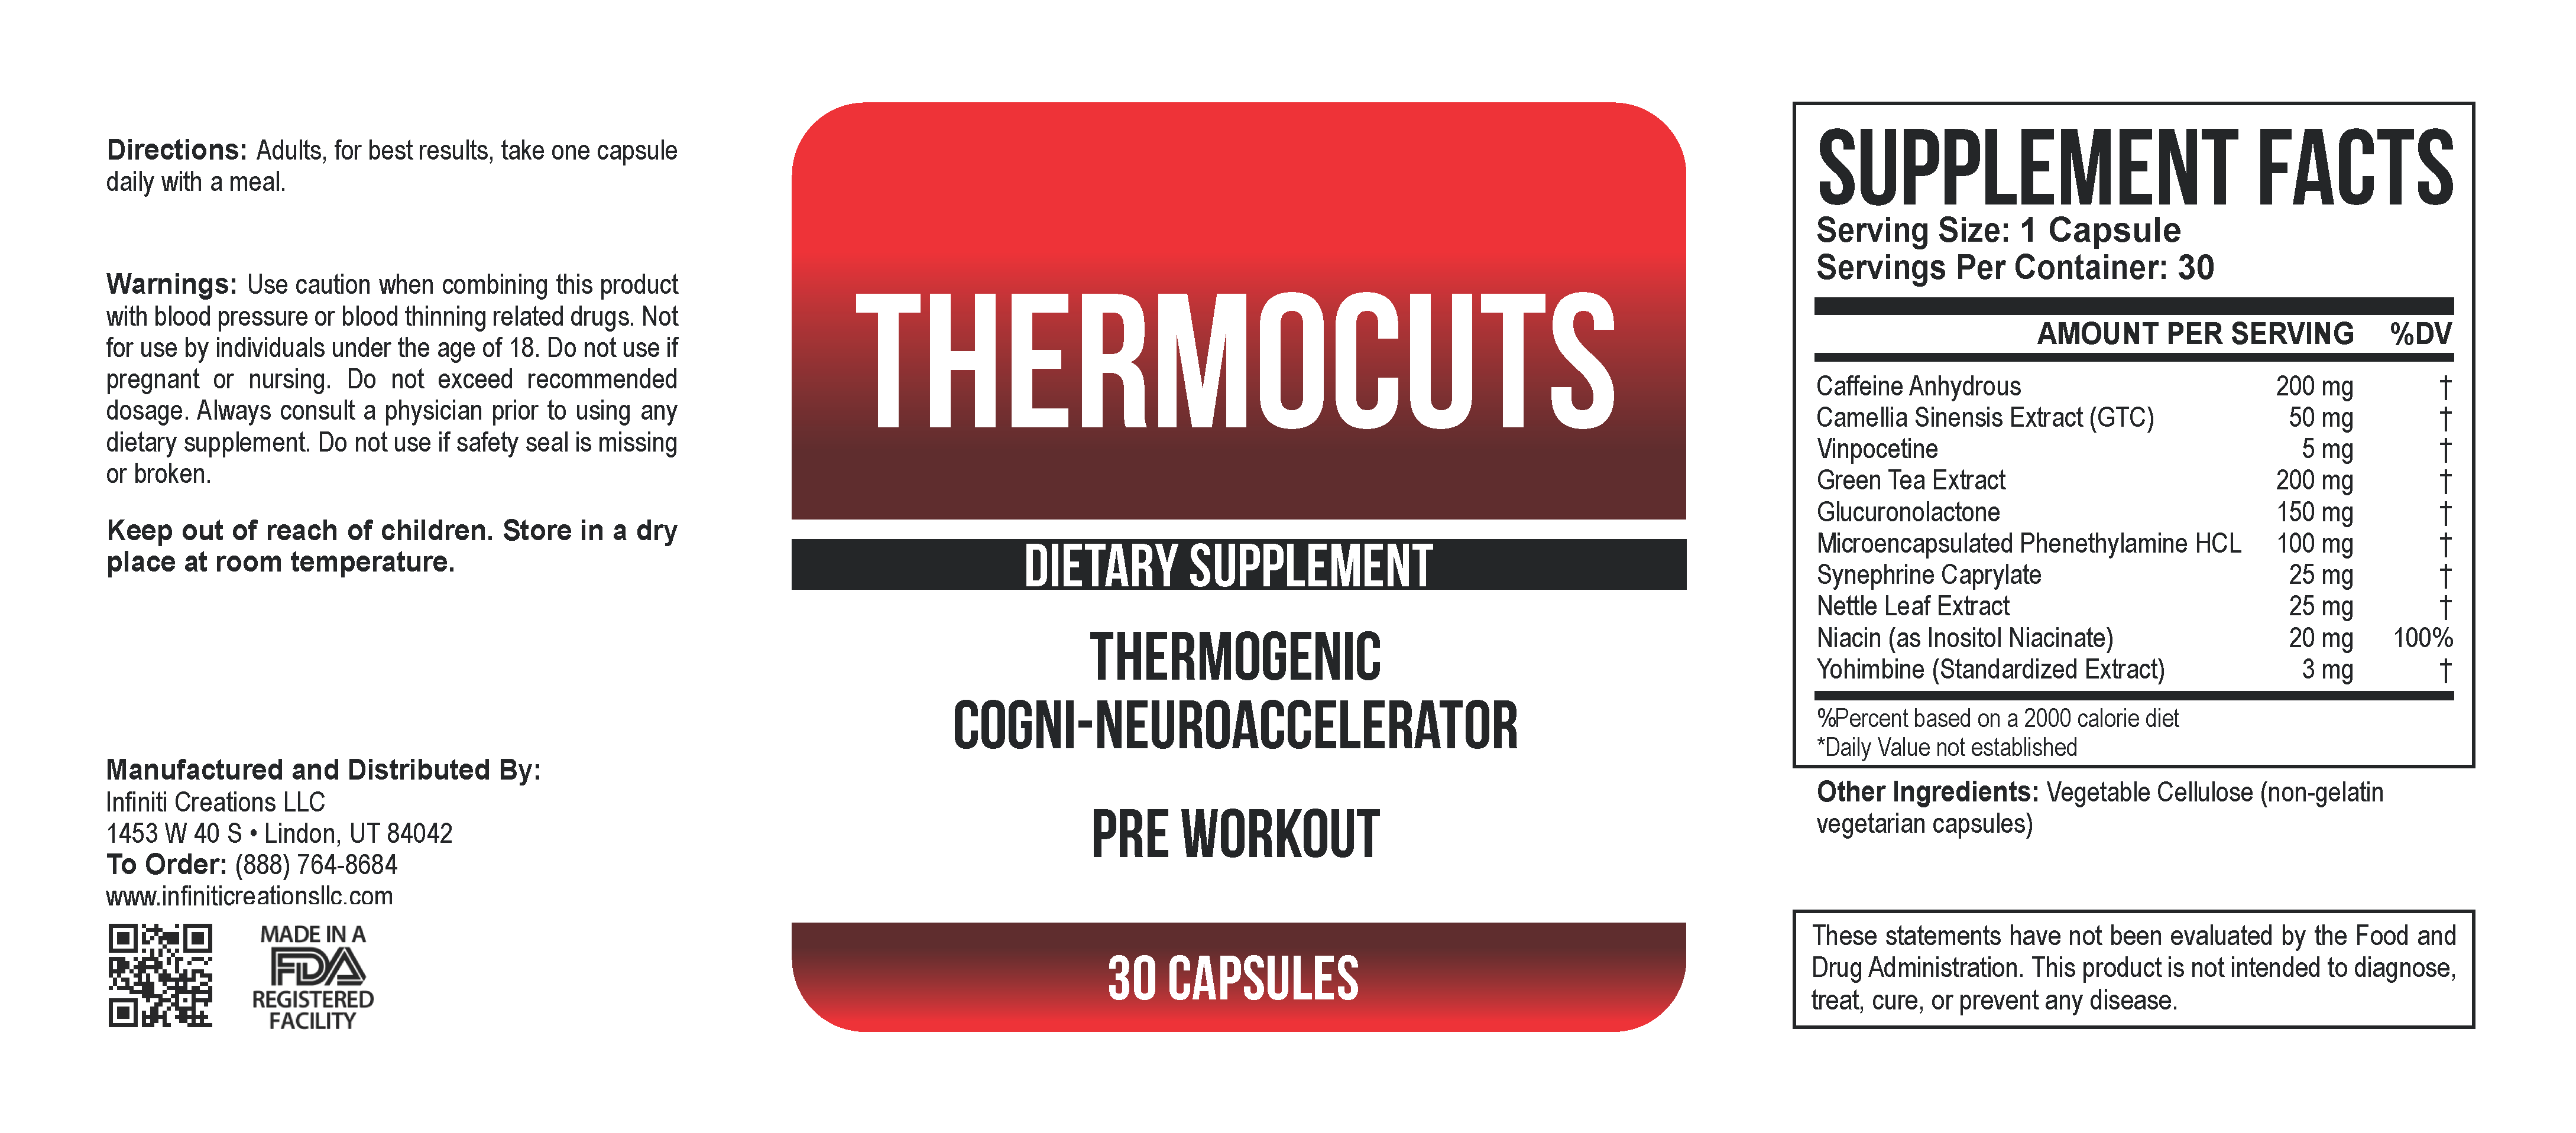 infiniti-creations-thermocuts-30ct-v2.png